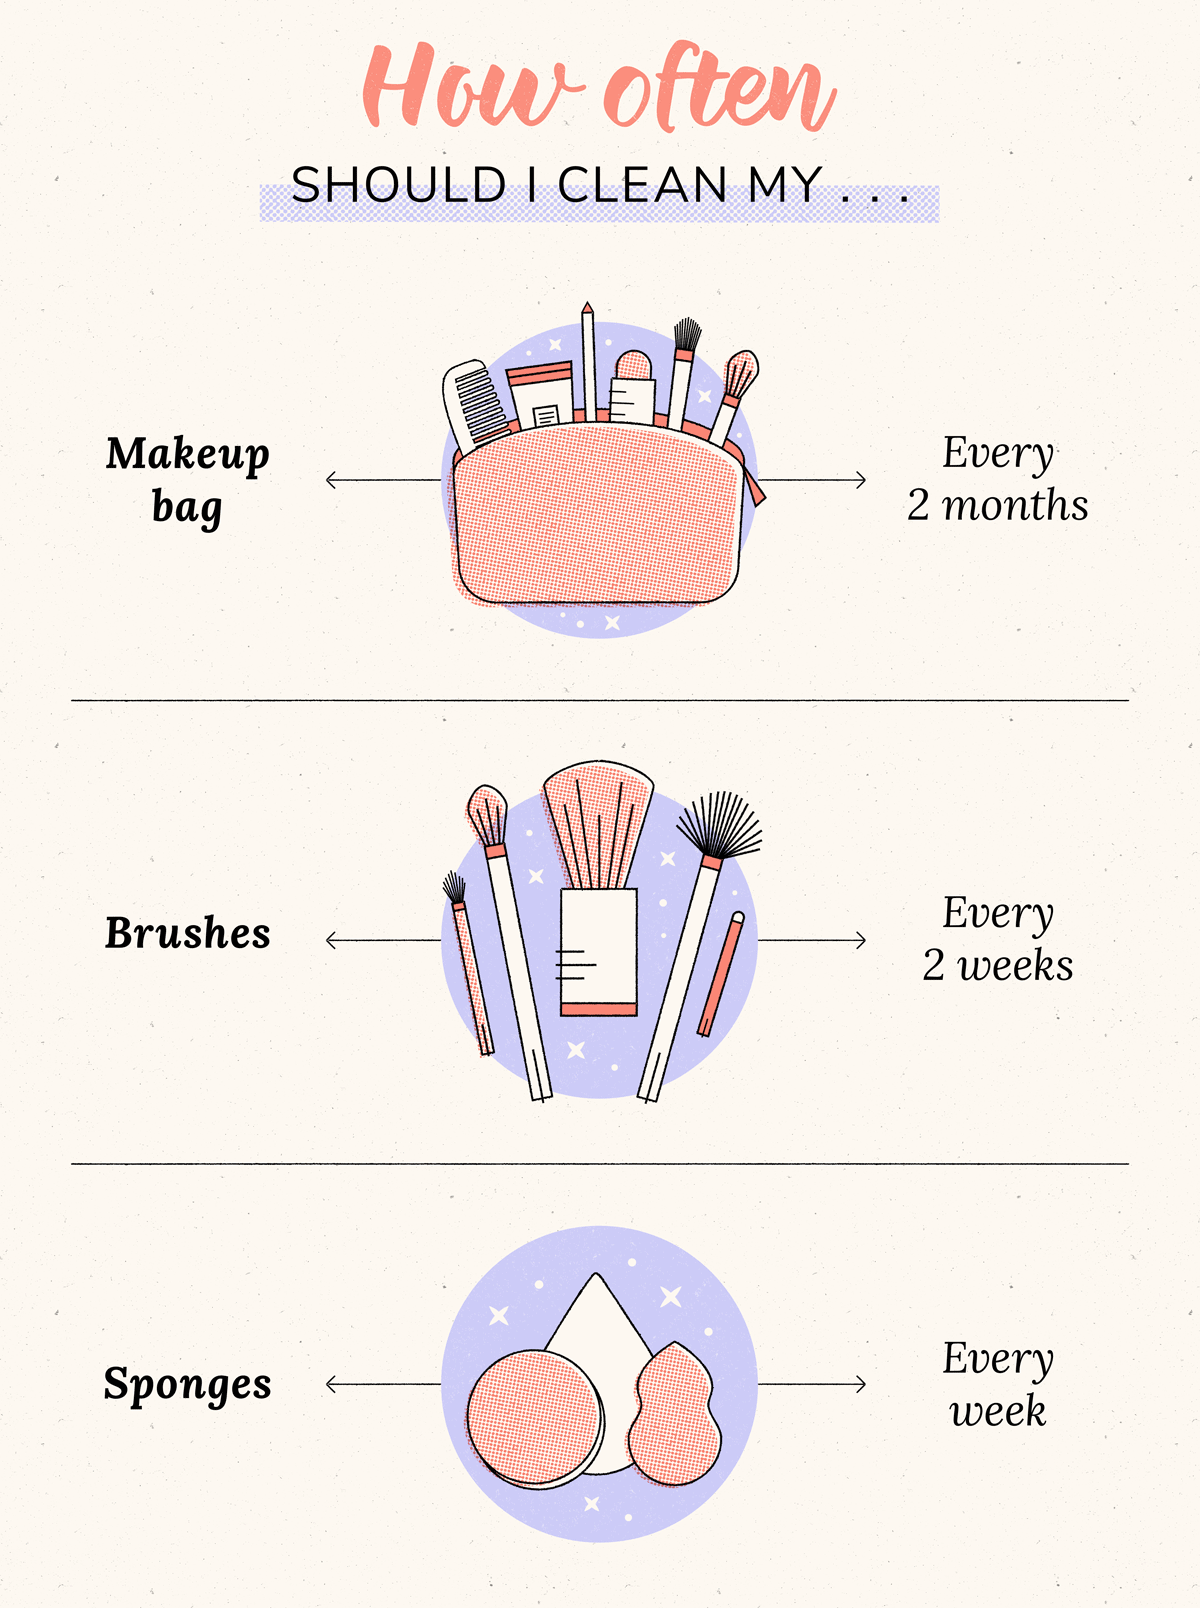 illustrations of makeup tools and how often to clean them